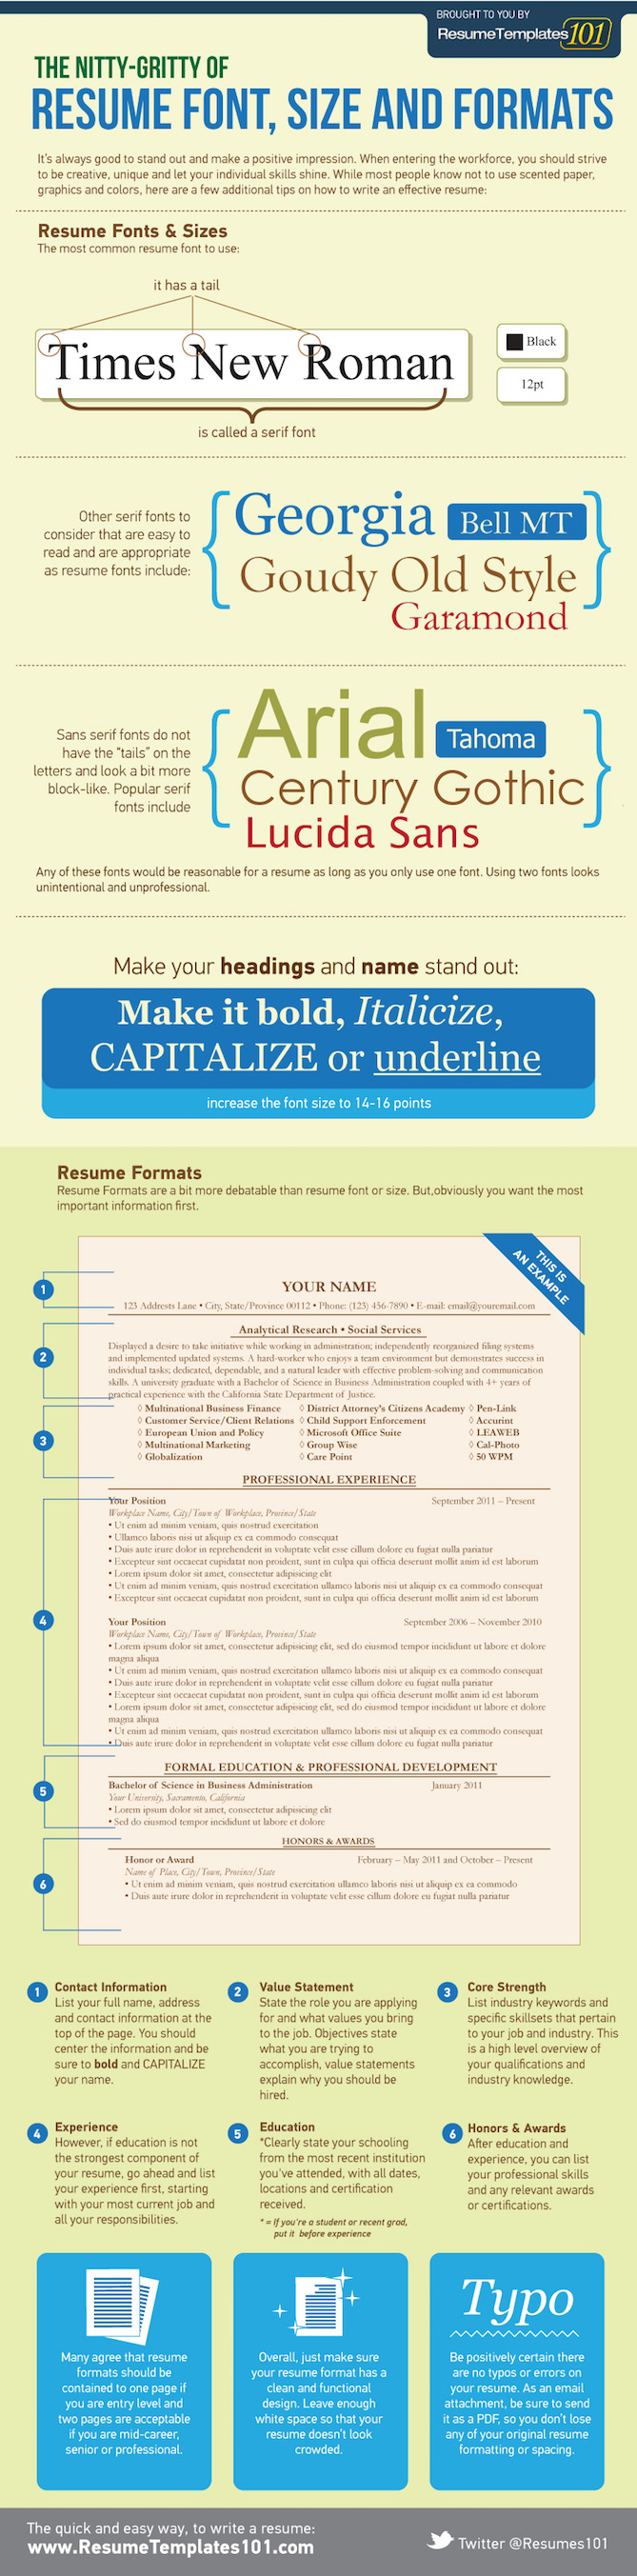 Resume format tips you need to know in 2018 sample formats included infographic on how to format a resume using the best font type font size altavistaventures Image collections